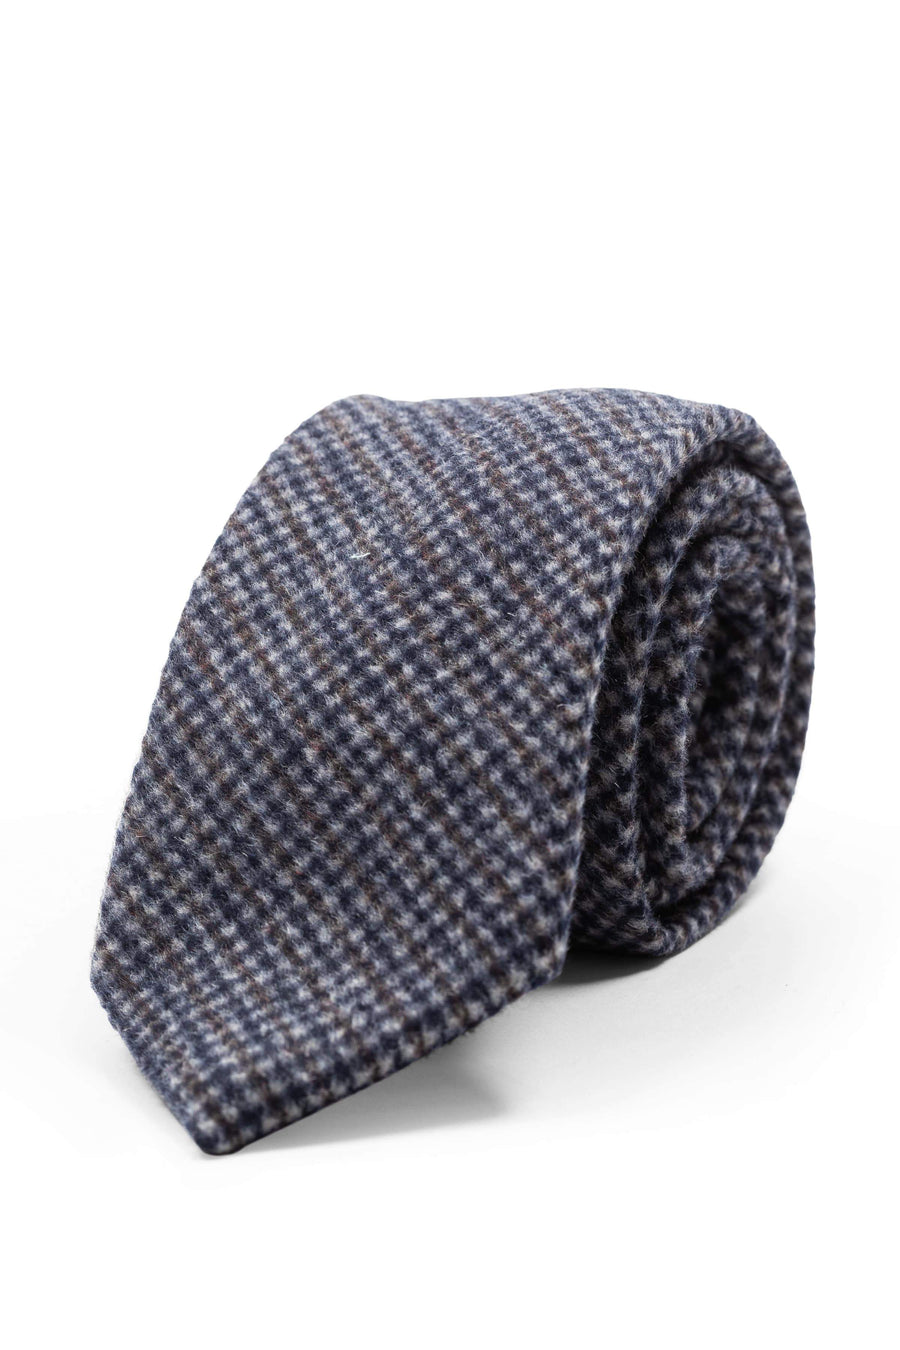 An ivy Slips Grey Patterned Wool Tie